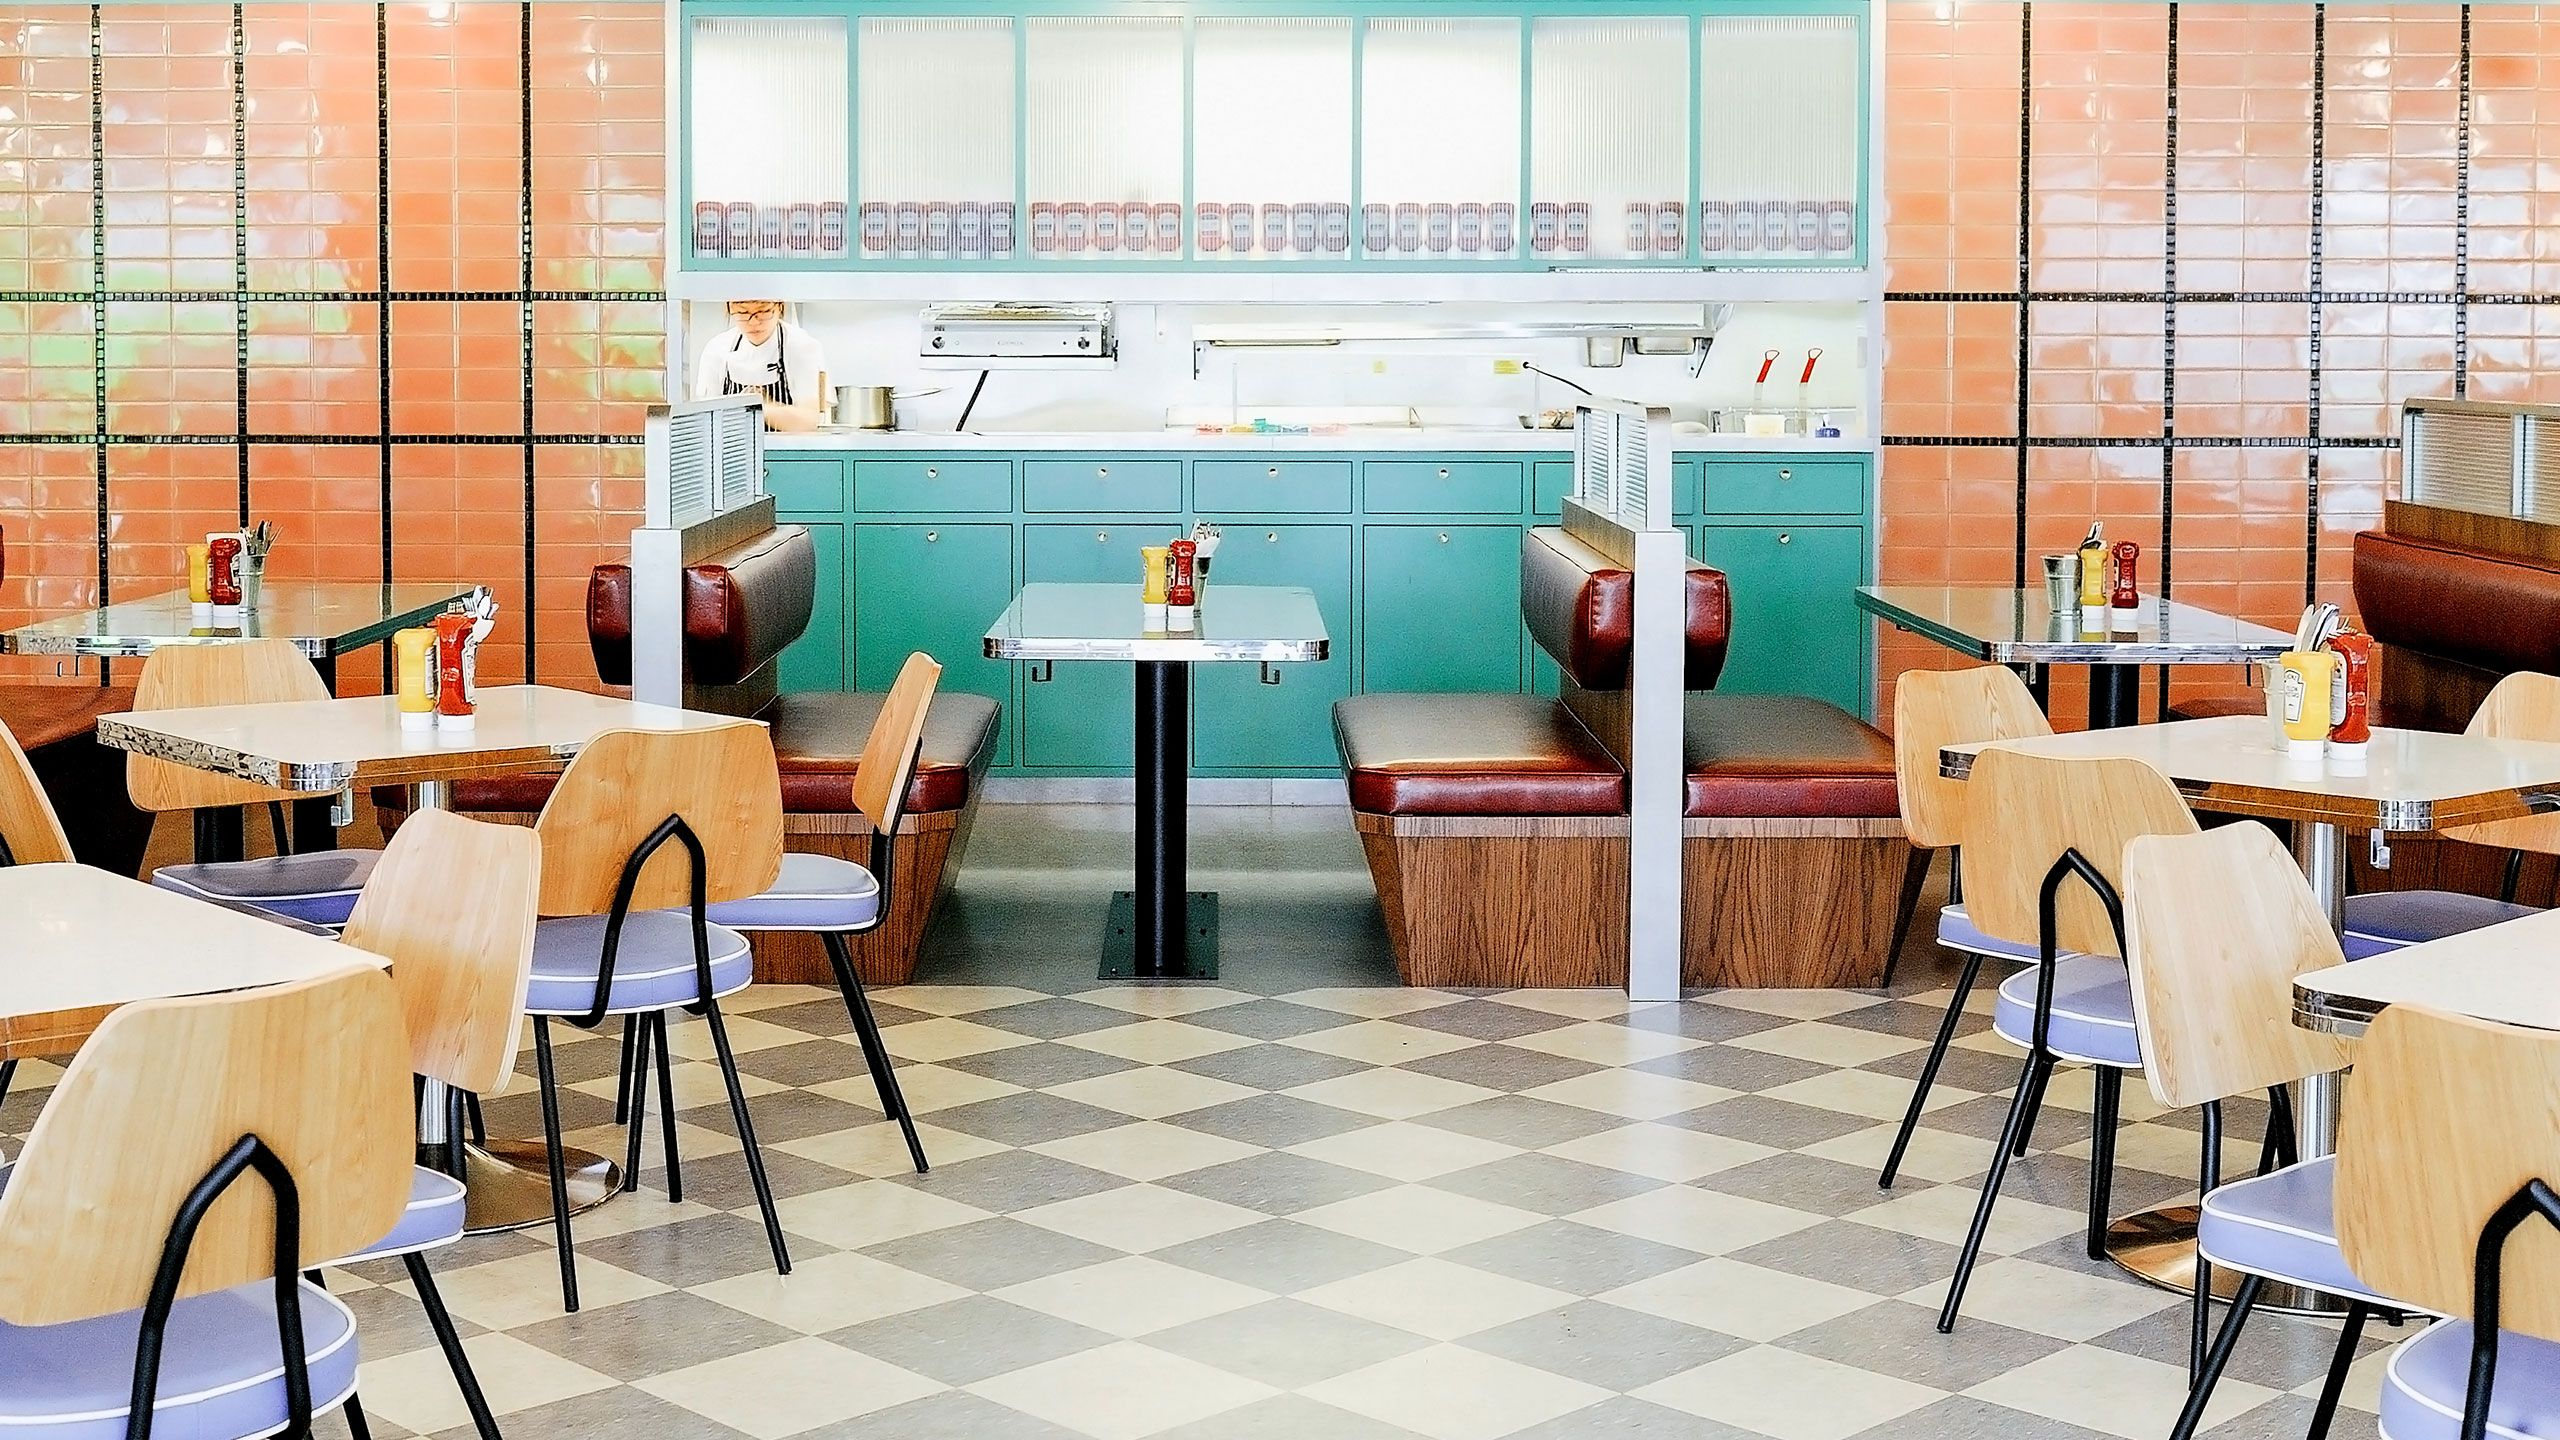 Overeasy Orchard A Modern All Pastel Nostalgic Diner In Singapore